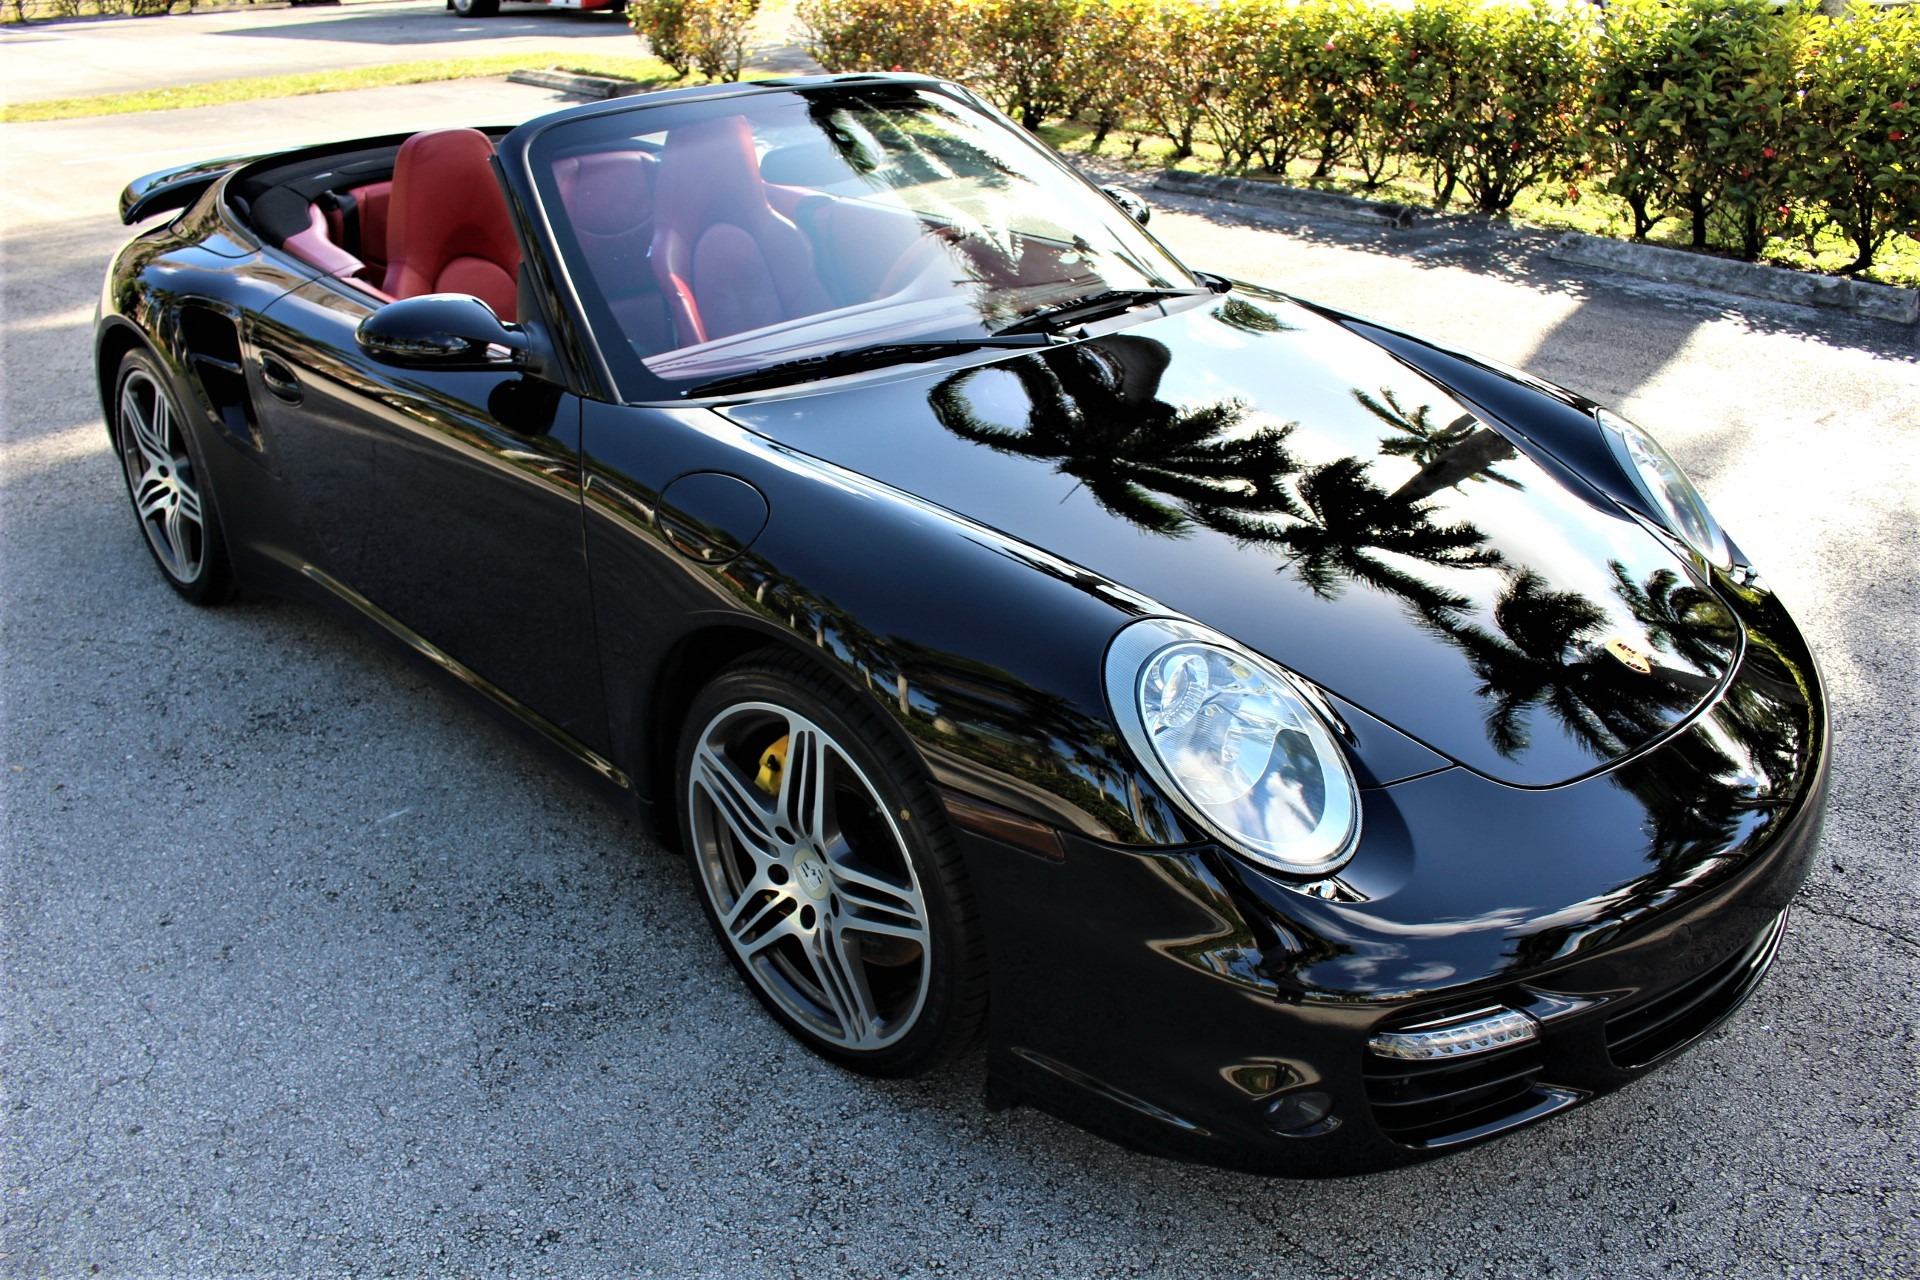 Used 2008 Porsche 911 Turbo for sale Sold at The Gables Sports Cars in Miami FL 33146 4